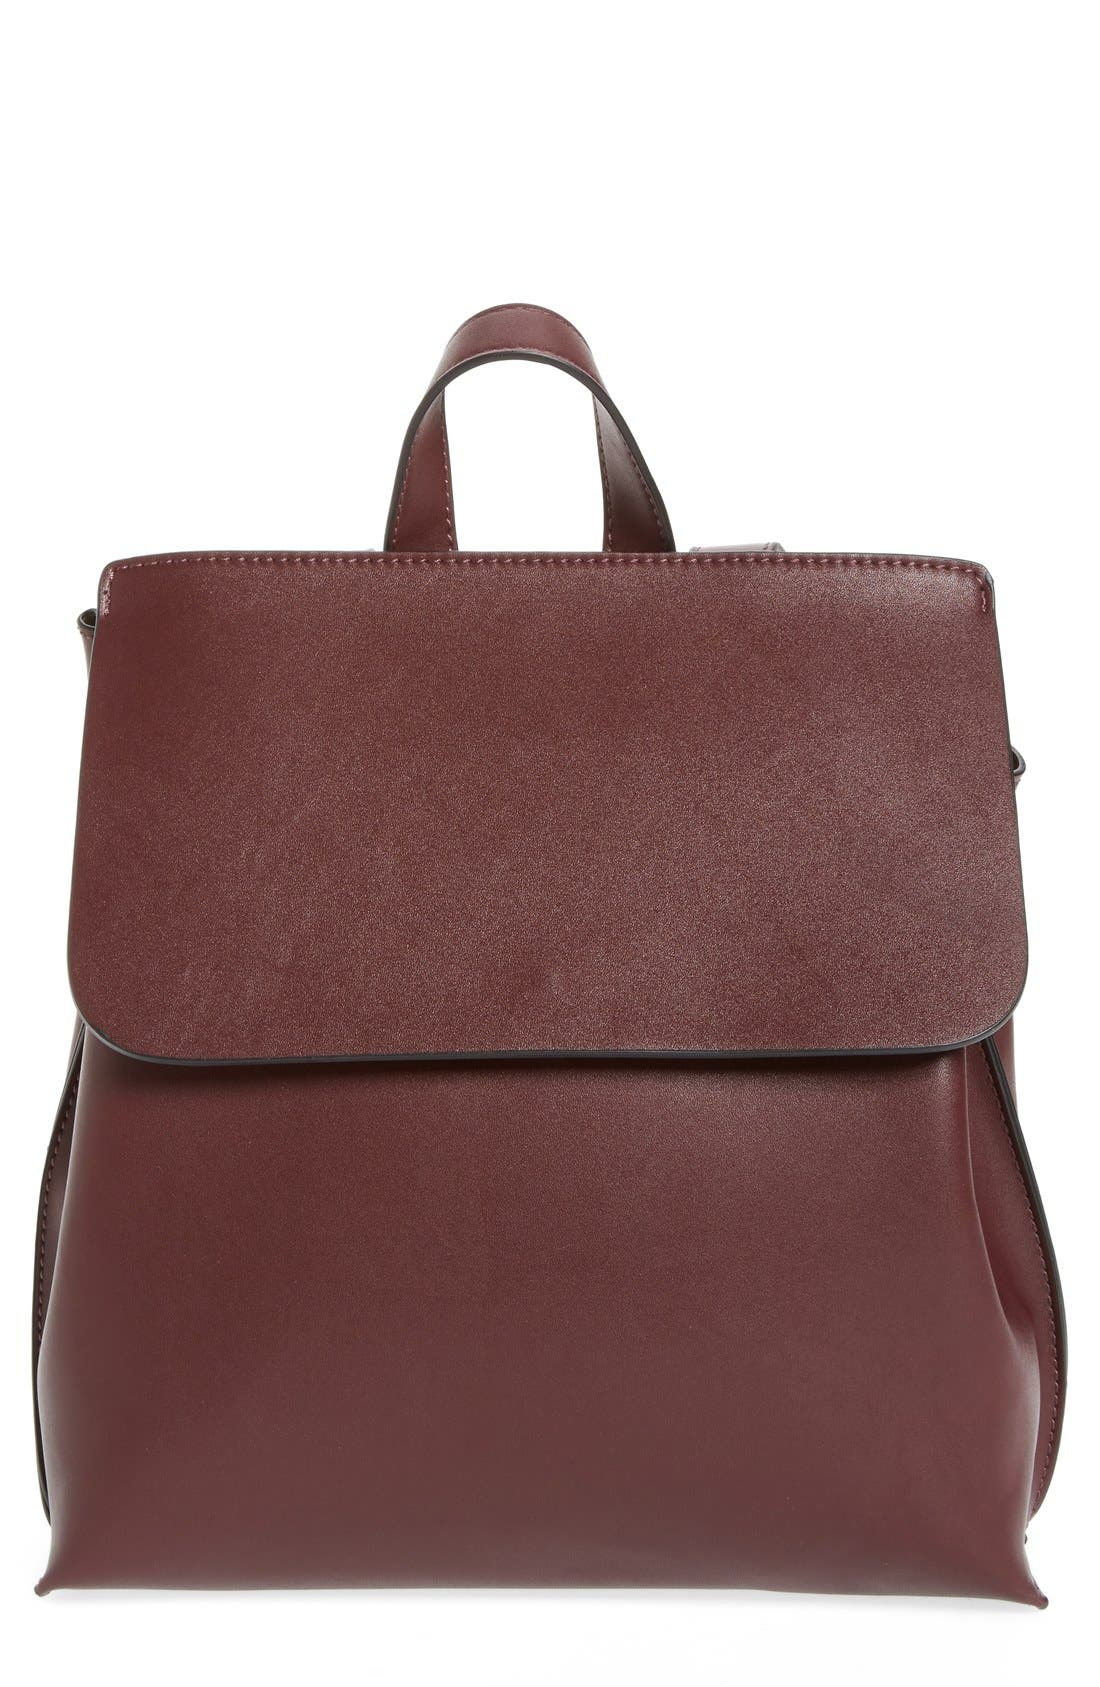 Alternate Image 1 Selected - Sole Society Selena Faux Leather Backpack